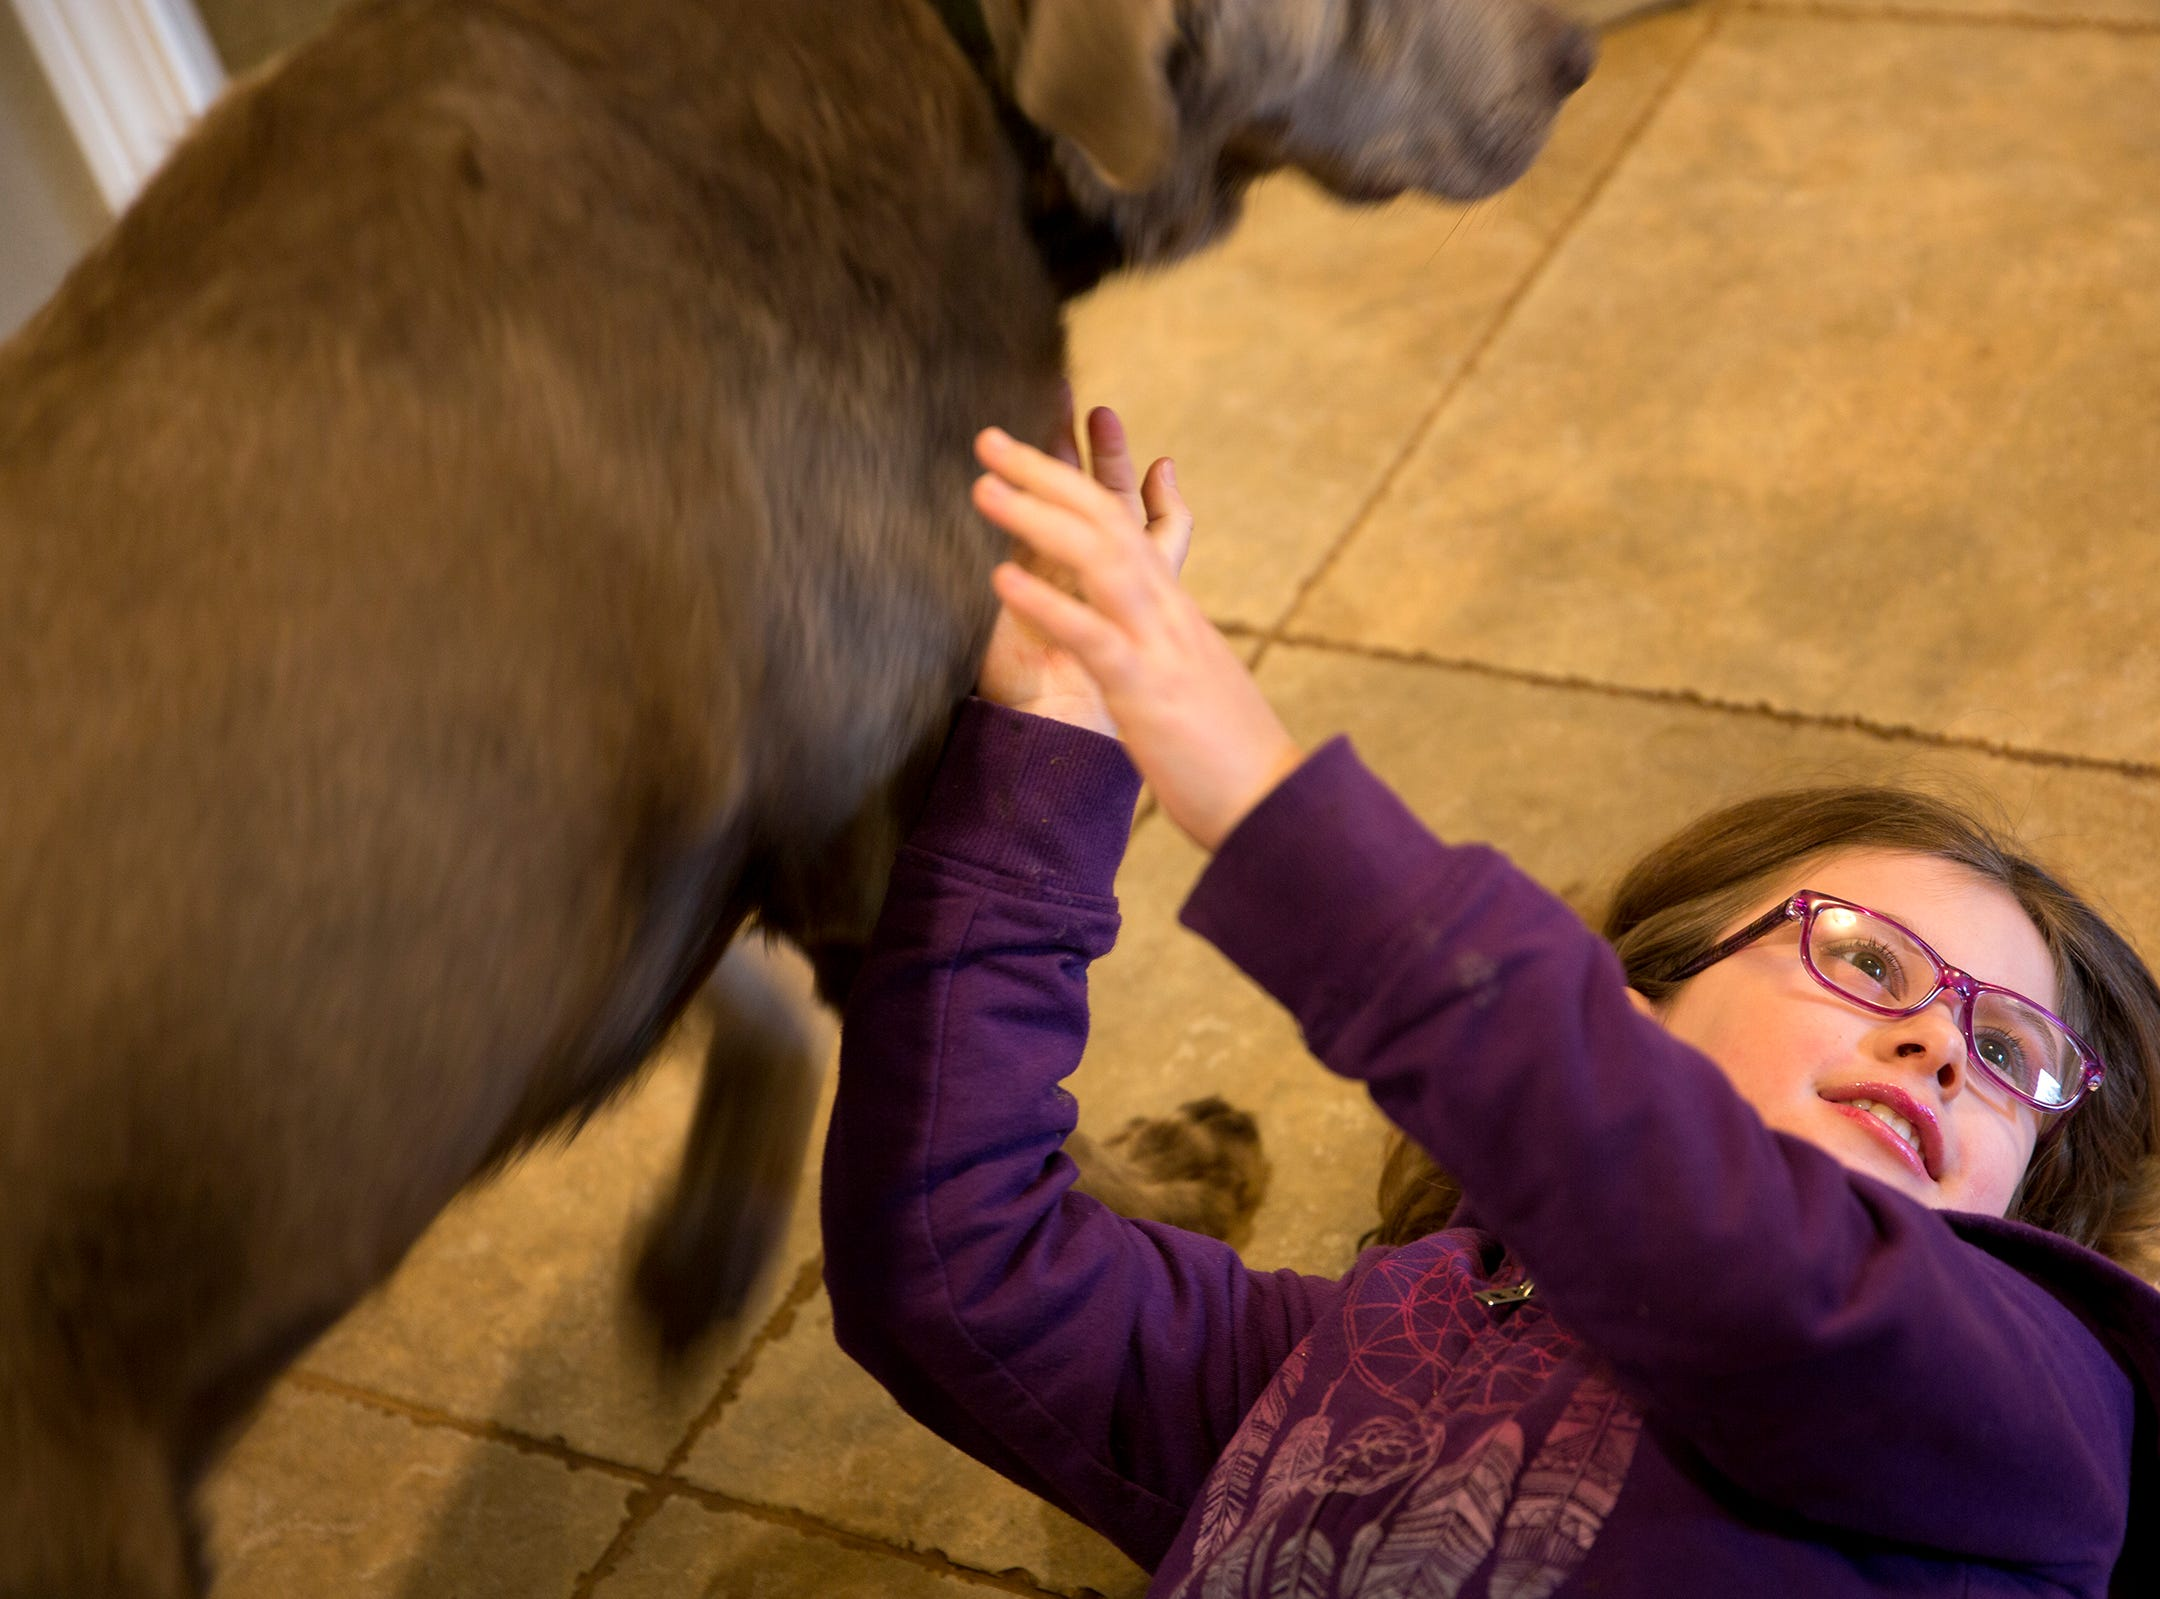 Haley Pollman, 9, plays with her dog Gary at her home in Salem on Saturday, Feb. 23, 2019.